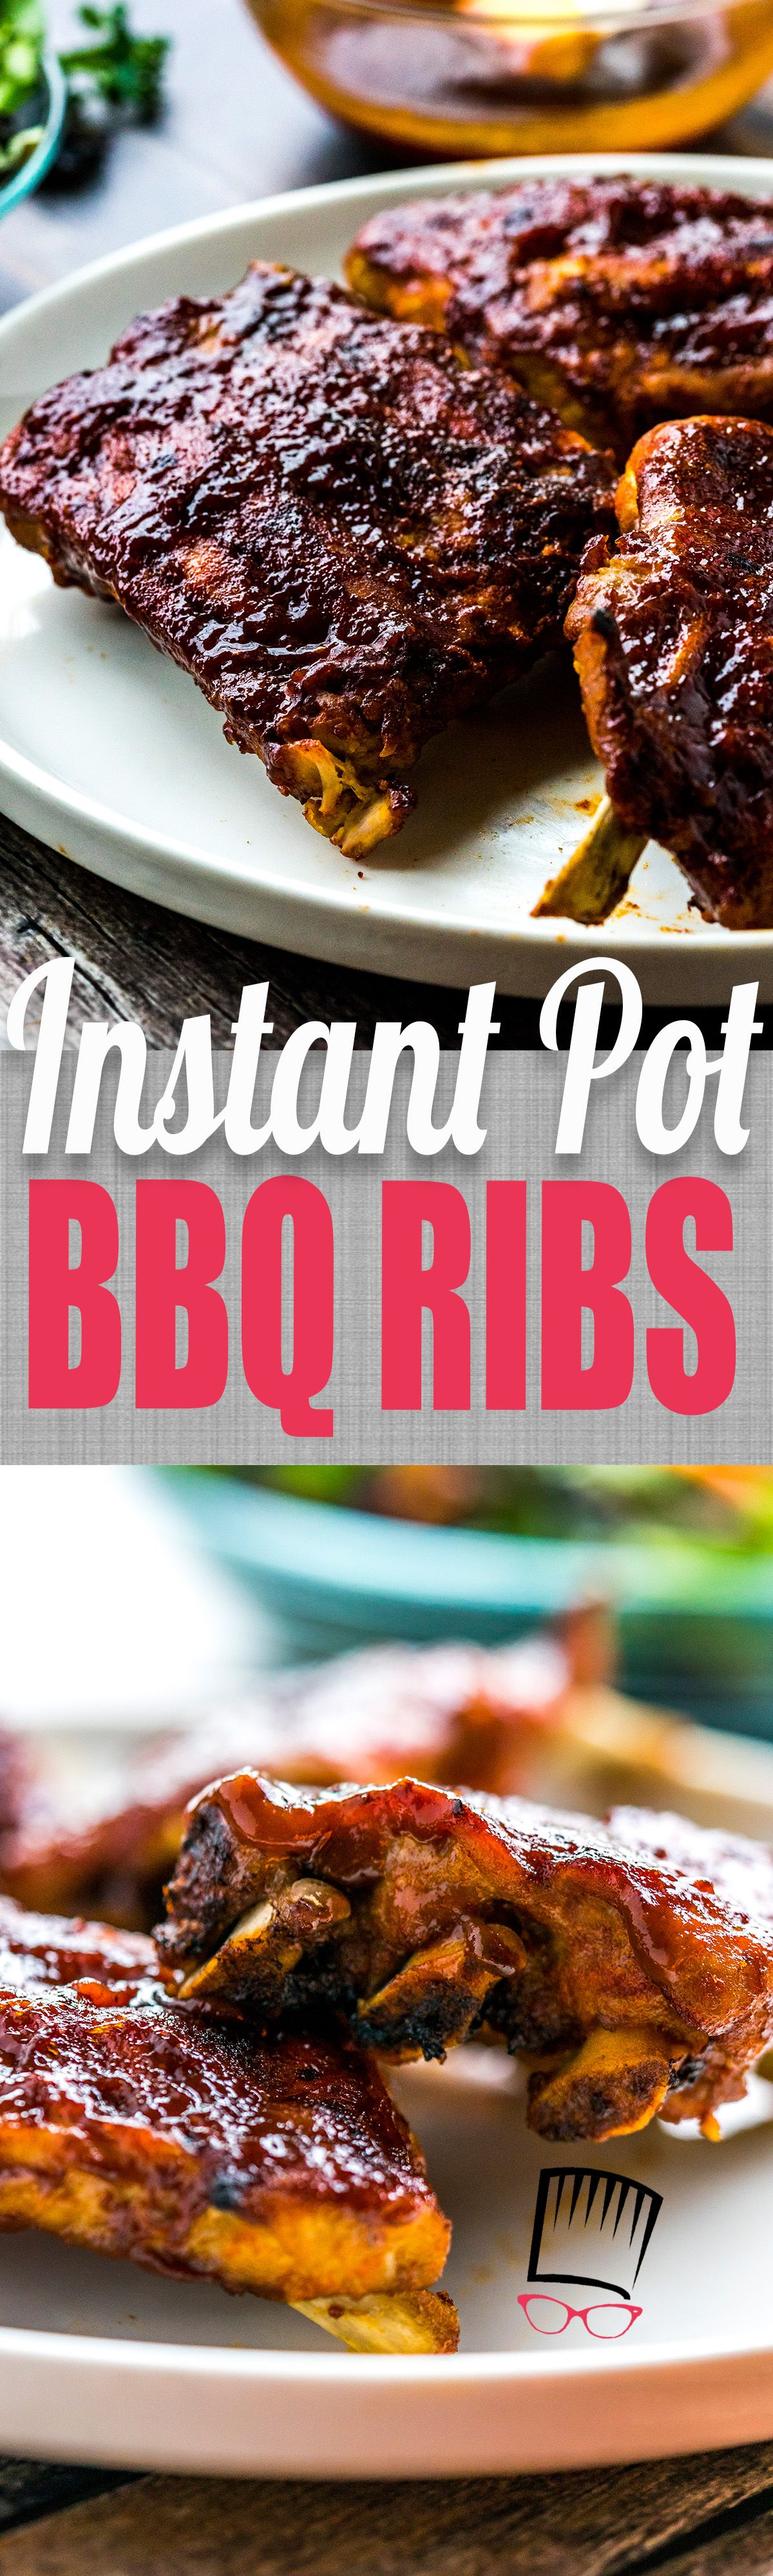 You can make the best, super quick and flavorful BBQ Ribs in the Instant pot! Just make an easy spice rub, cook with some beer until tender and throw under the broiler until nice and caramelized! You need this recipe if you have an Instant Pot! #ribs #bbq #babybackribs #instantpot